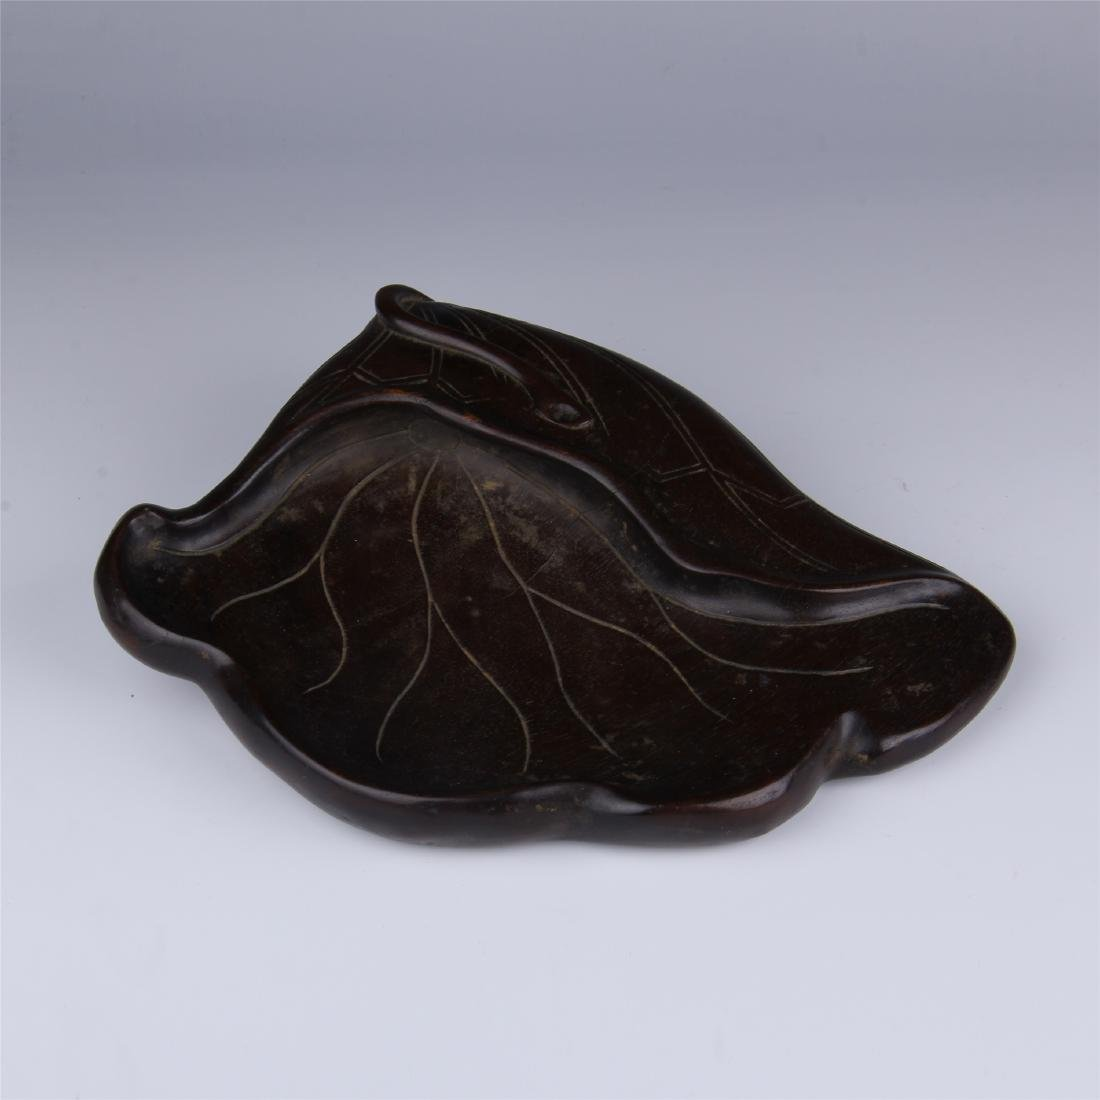 CHINESE ZITAN LOTUS LEAF INK STONE